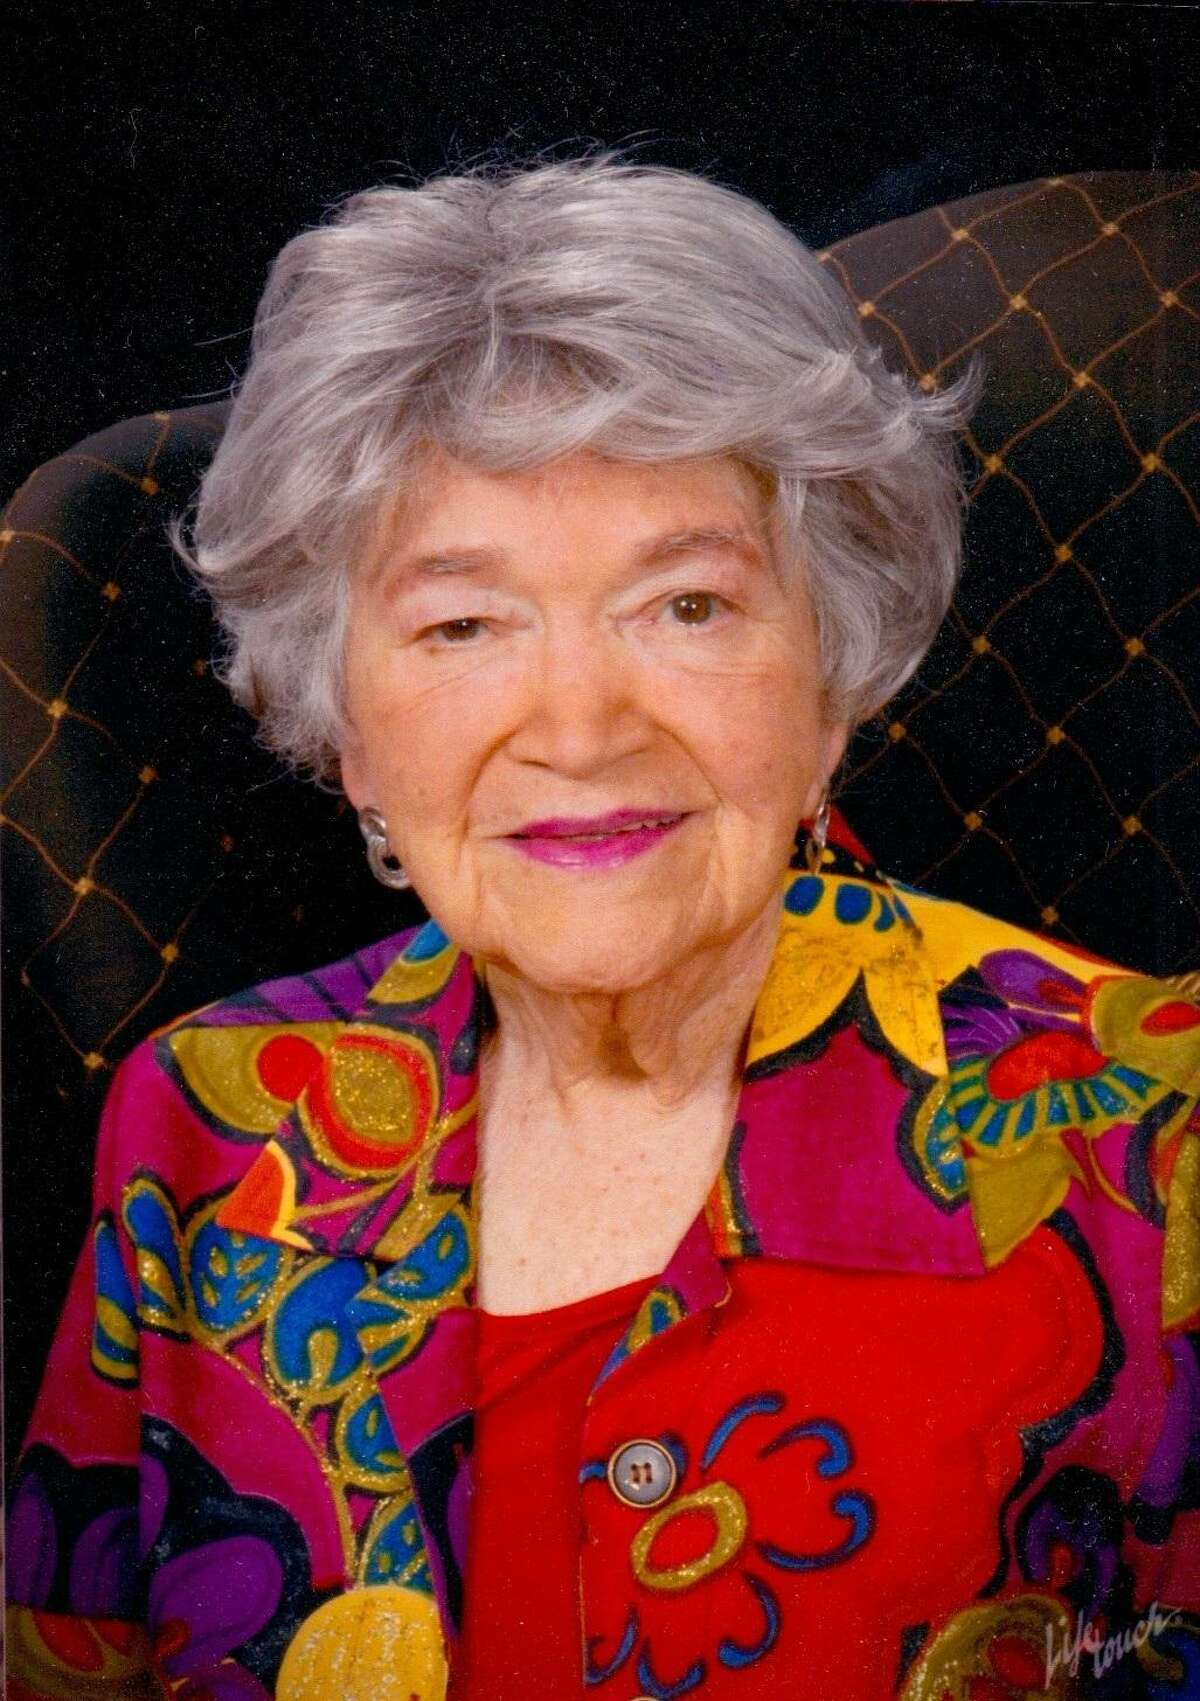 Folk Dance Festival: Nelda Drury, pictured, who founded the San Antonio Folk Dance Festival, died Feb. 21. The festival, which is marking its 61st anniversary this week, will pay tribute to Drury in a couple of ways. She will be honored during the concert, which will feature performances by Komenka Ethnic Dance Ensemble, Ballet Folklorico South Texas College; Alamotion Dance Troupe; San Antonio Swing Dance Society; and Folk Dance Group Uzori. She also will be honored during the Henry Lash Bash luncheon on Sunday. The festival takes place at Our Lady of the Lake University. The festival takes place on the campus of Our Lady of the Lake University, 411 S.W. 24th Street. Concert: 7:30 p.m. Saturday, Thiry Auditorium. $10 to $20; free for lap children. Henry Lash Bash Luncheon: 1 p.m. Sunday, International Folk Culture Center. $15. Info and tickets available at safdf.org. - Deborah Martin